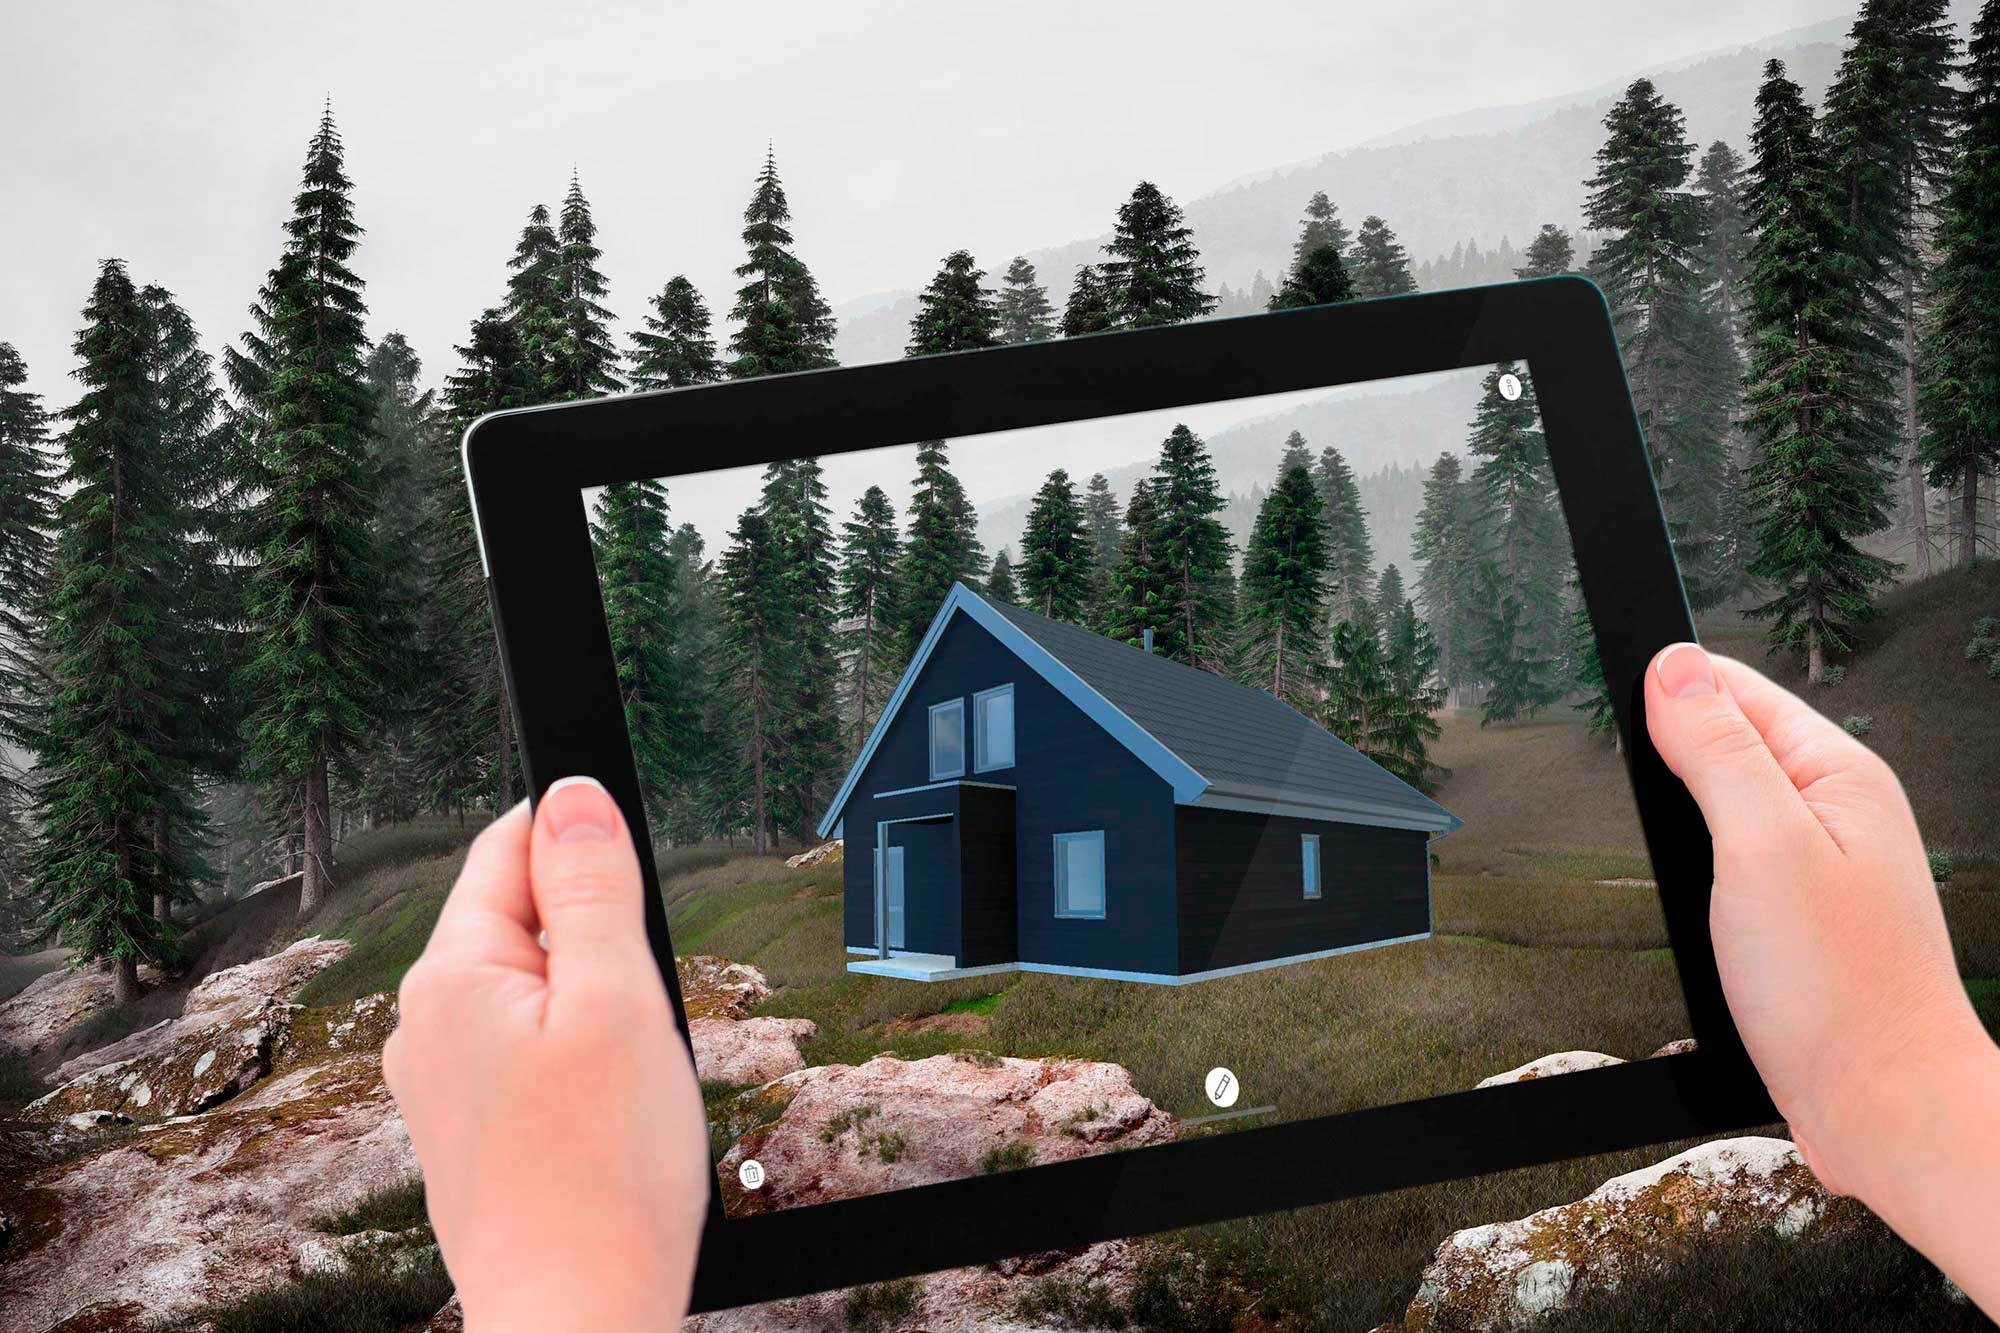 Augmented Reality Solutions by Cadesign form - a wooden house on an iPad blends in with the landscape